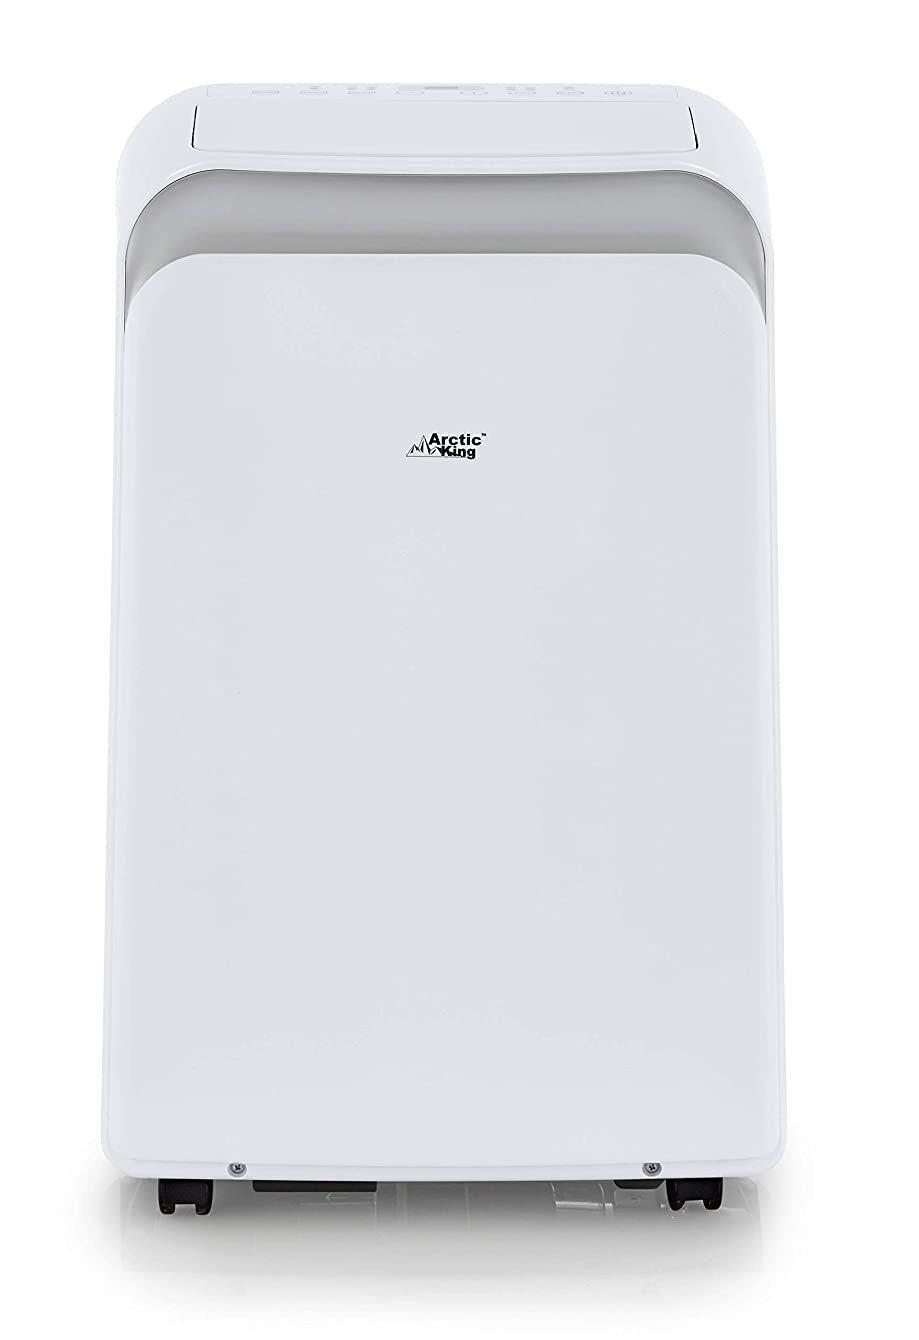 Arctic King 12,000Btu Remote Control Portable Air Conditioner, White (Renewed)